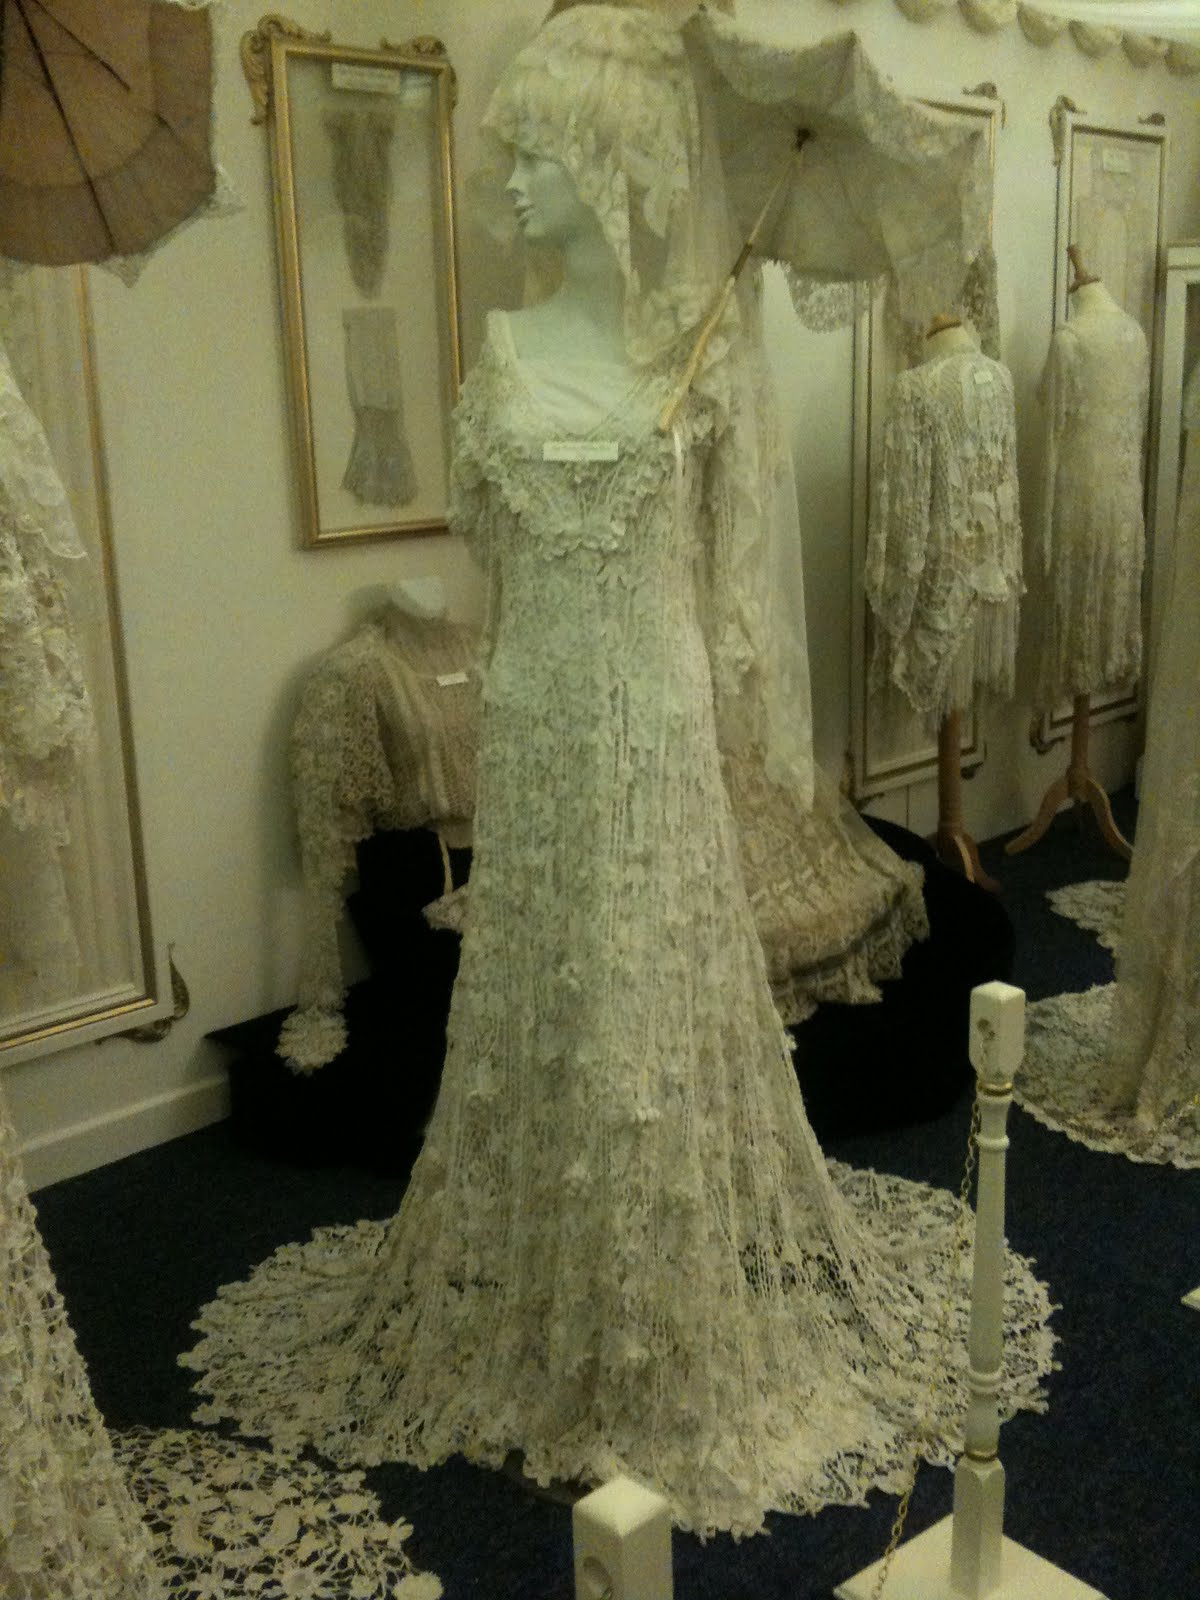 Rosemary Cathcart Antique Lace and Vintage Fashion: The ...